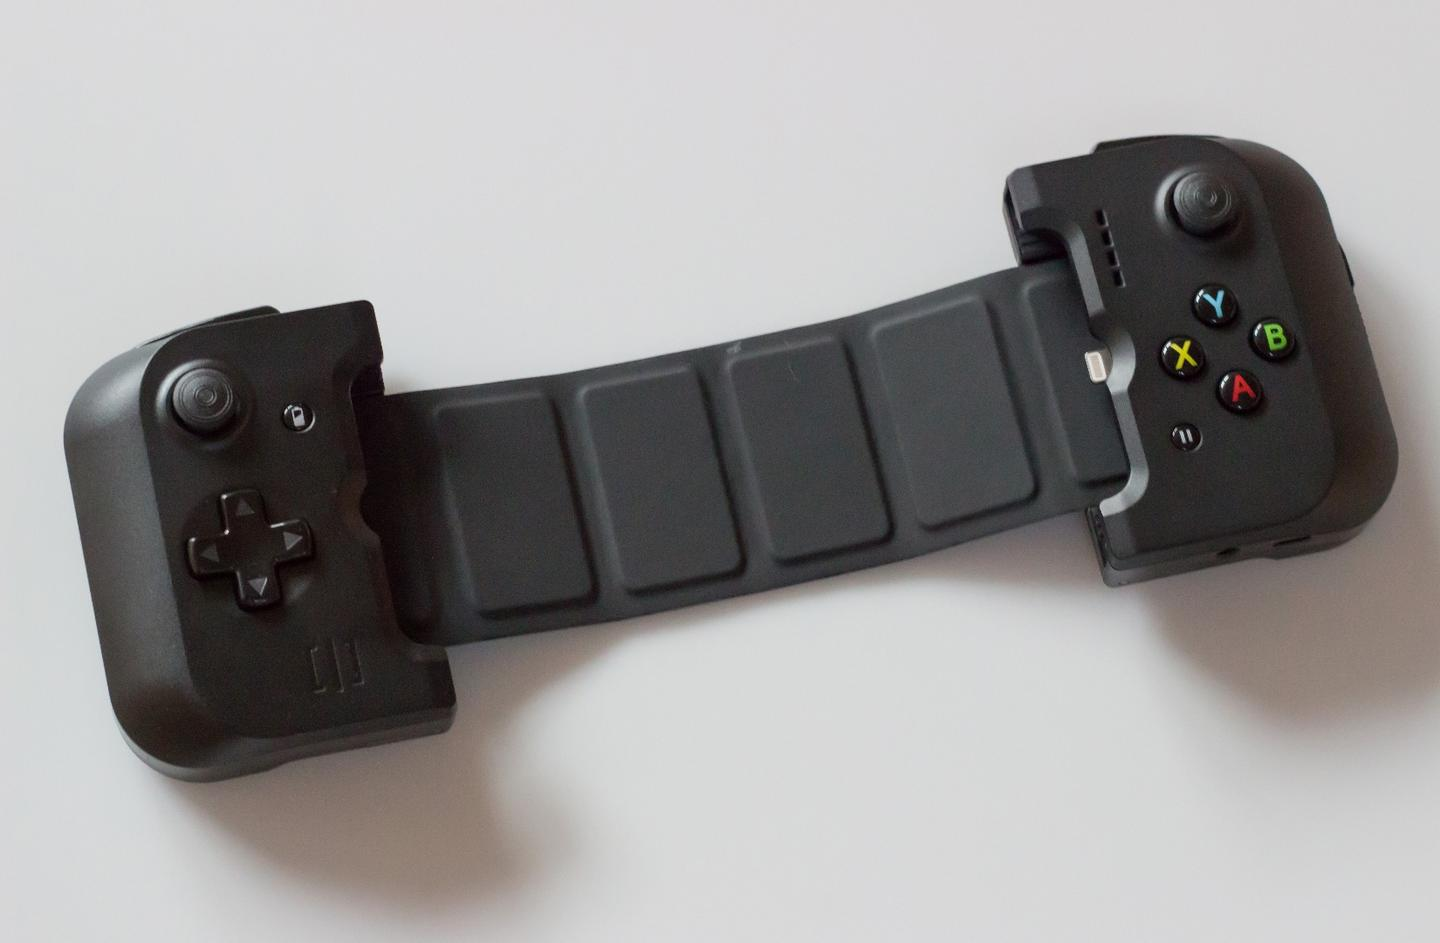 Like the larger version for iPad mini, Gamevice for iPhone has a retractable strap on the back